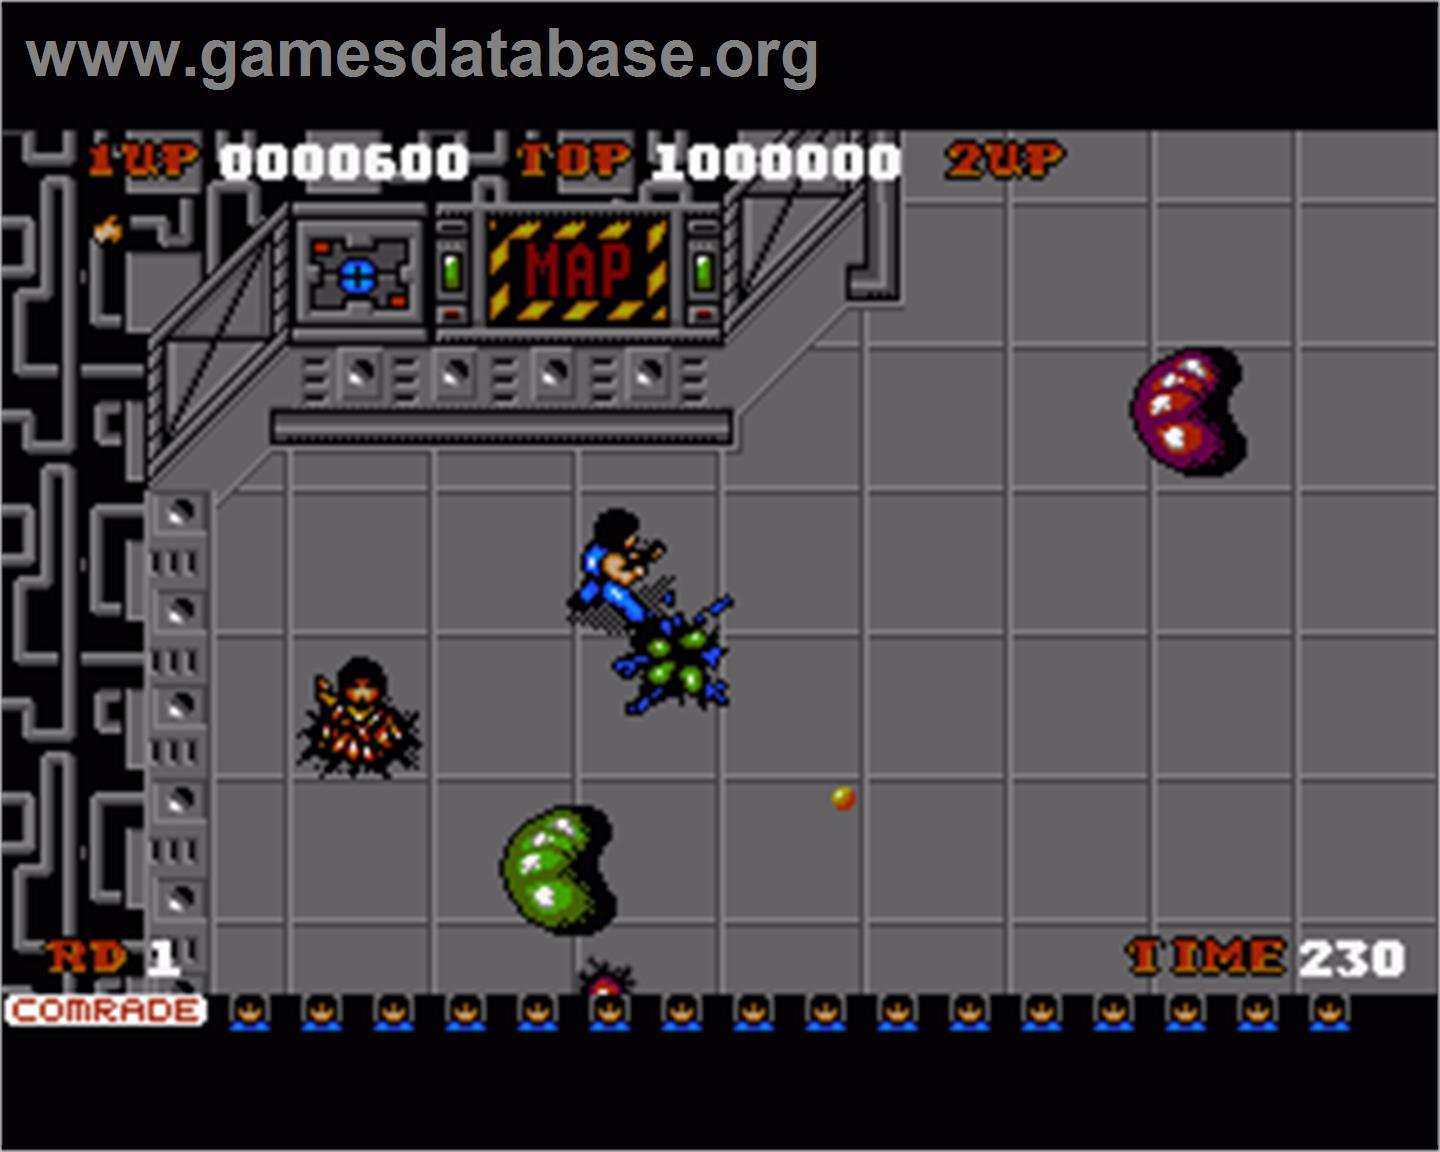 Alien syndrome commodore amiga games database for Alien syndrome